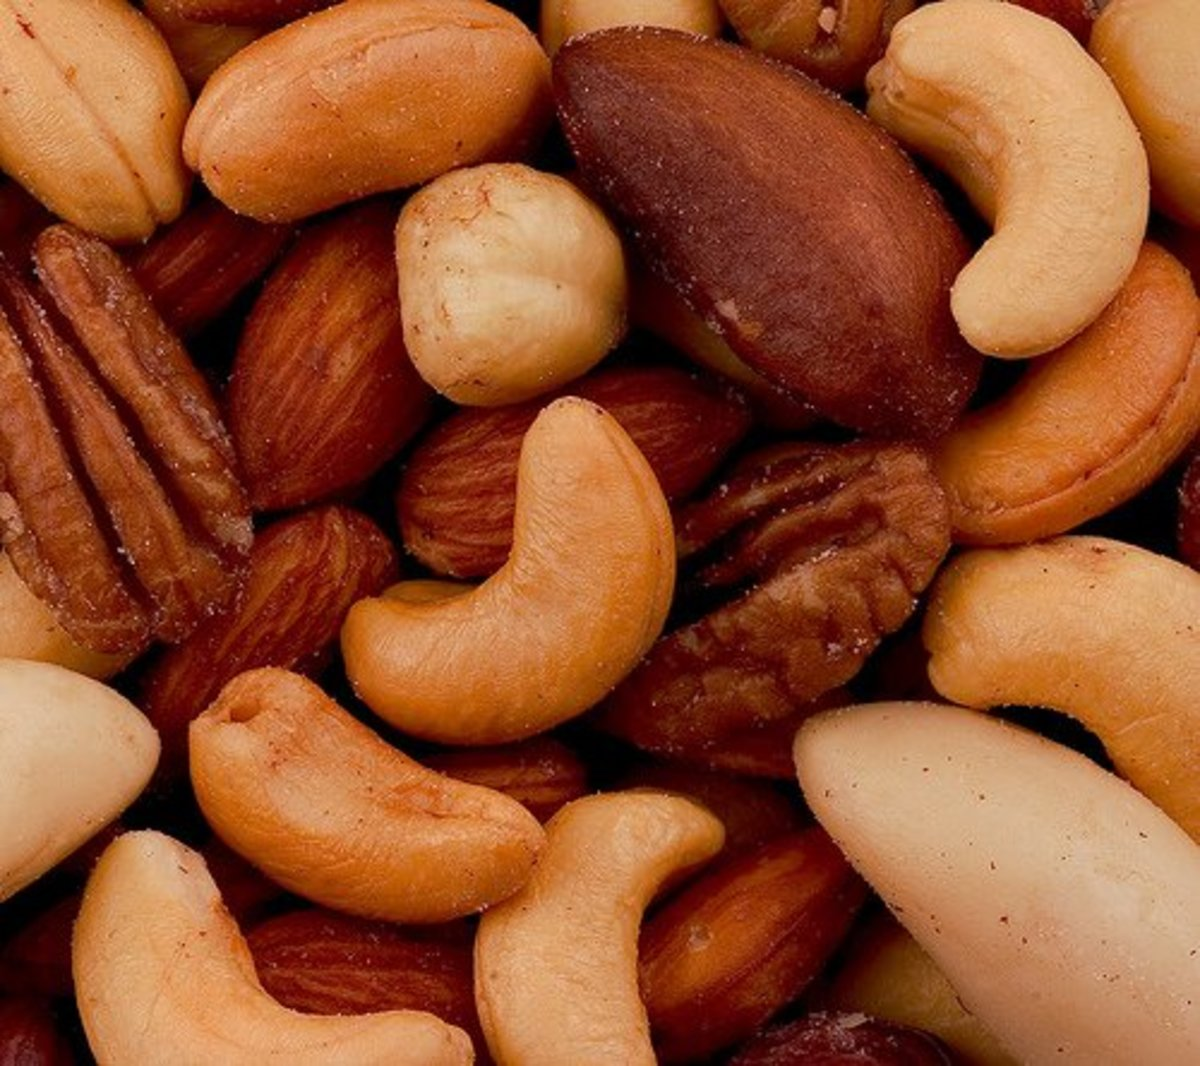 Nuts, a source of Vitamin E